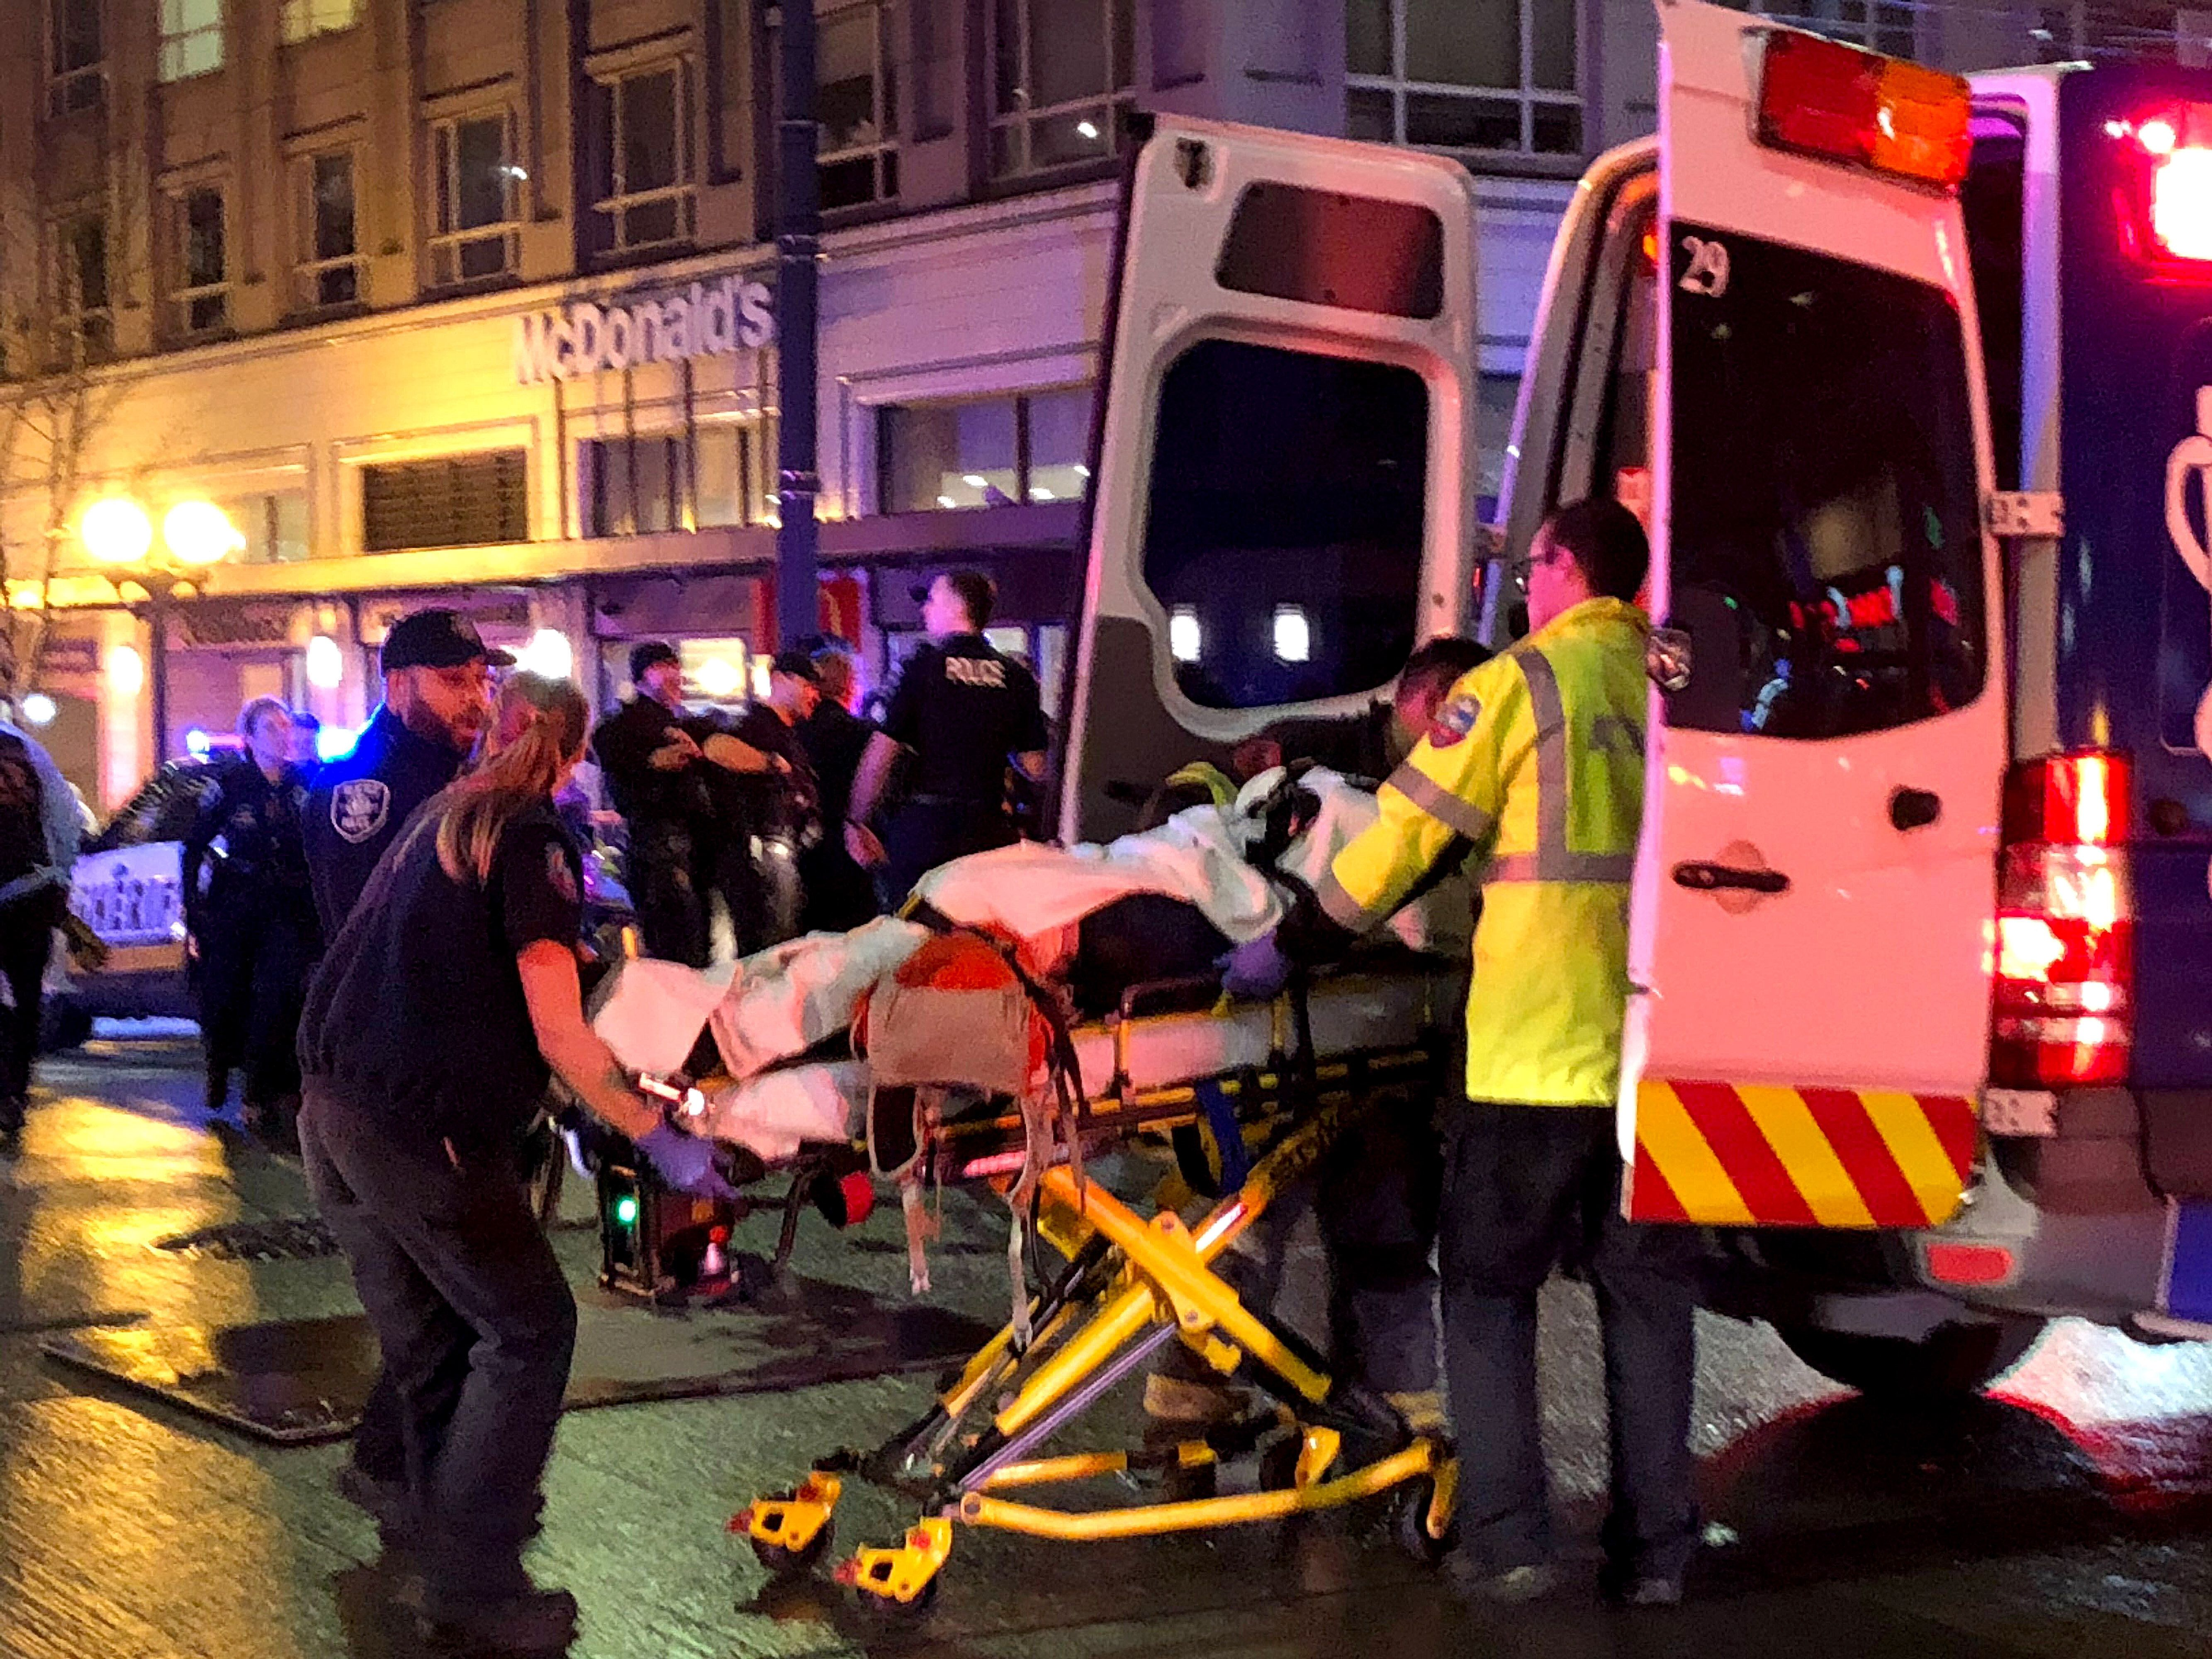 First responders give aid to a shooting victim in downtown on January 22, 2020 in Seattle, Washington.